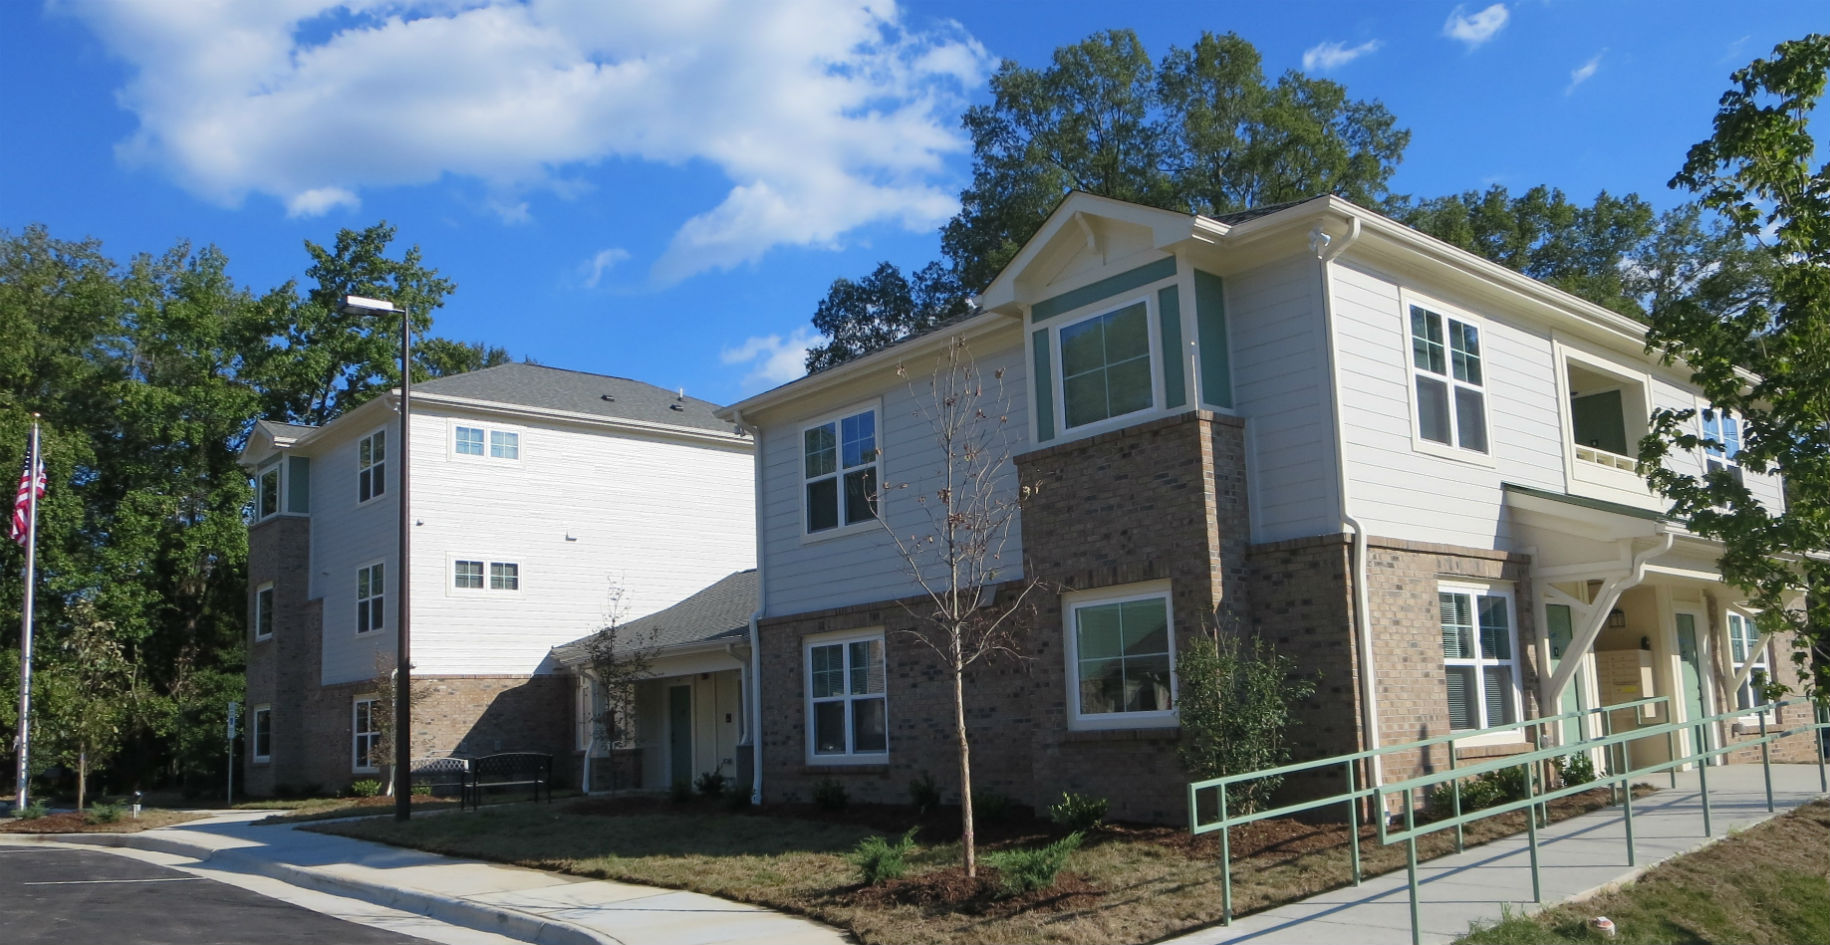 The Denson Apartments for Veterans, Phase II